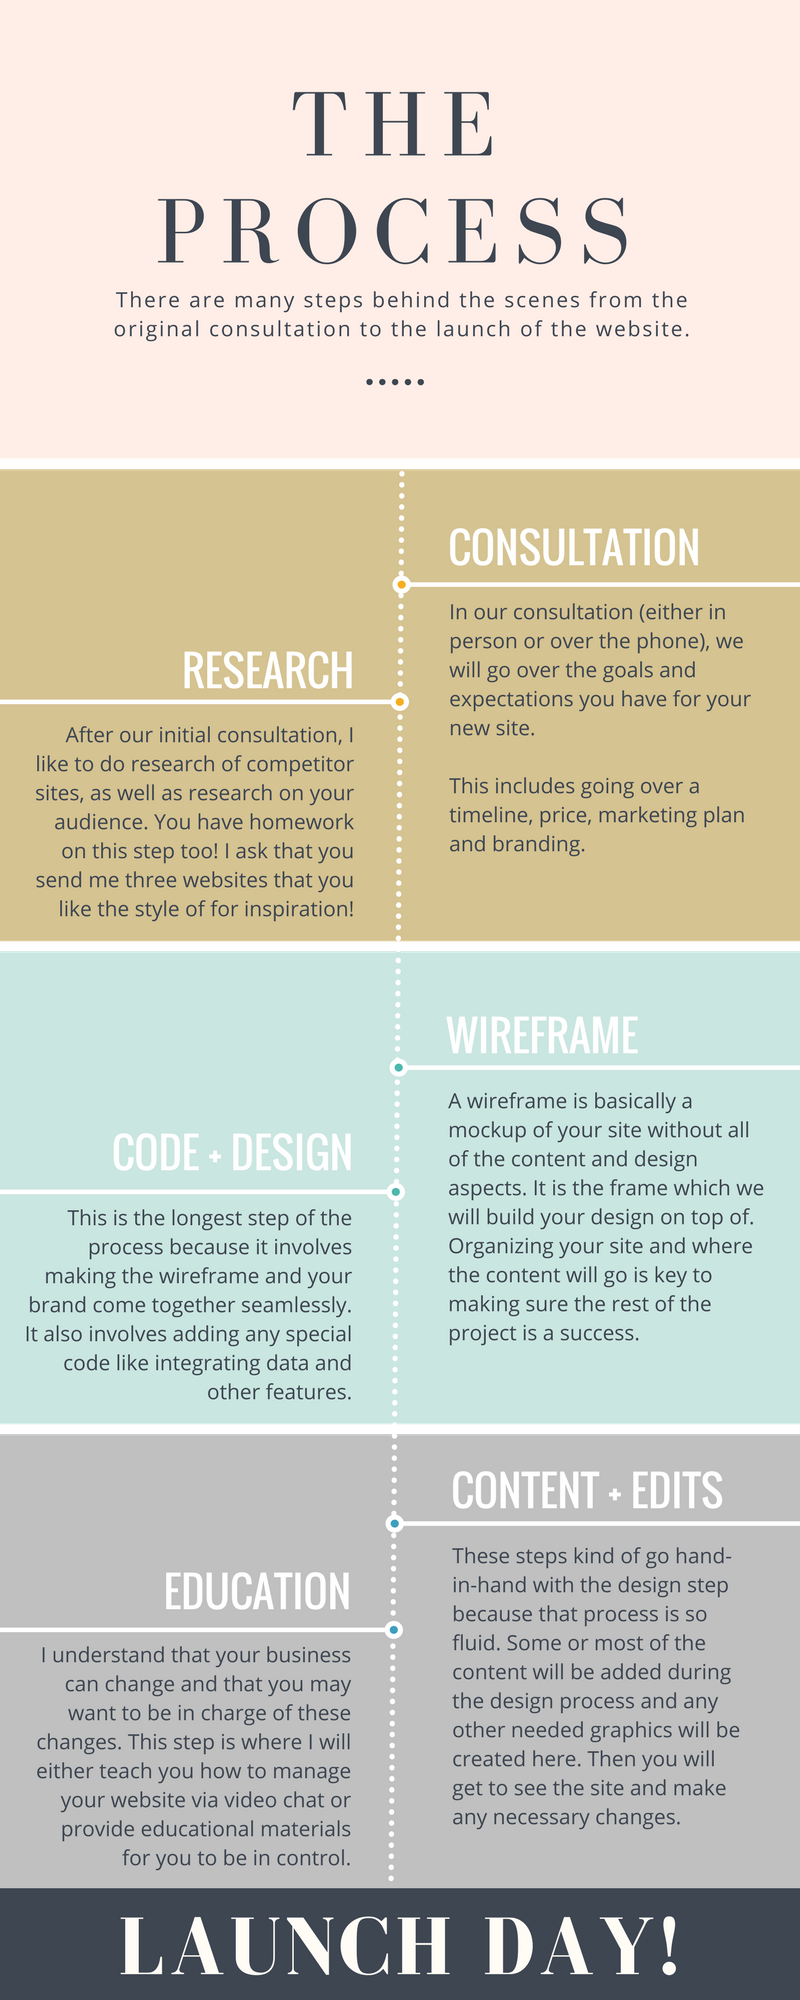 amor paloma designs web design process knoxville web design